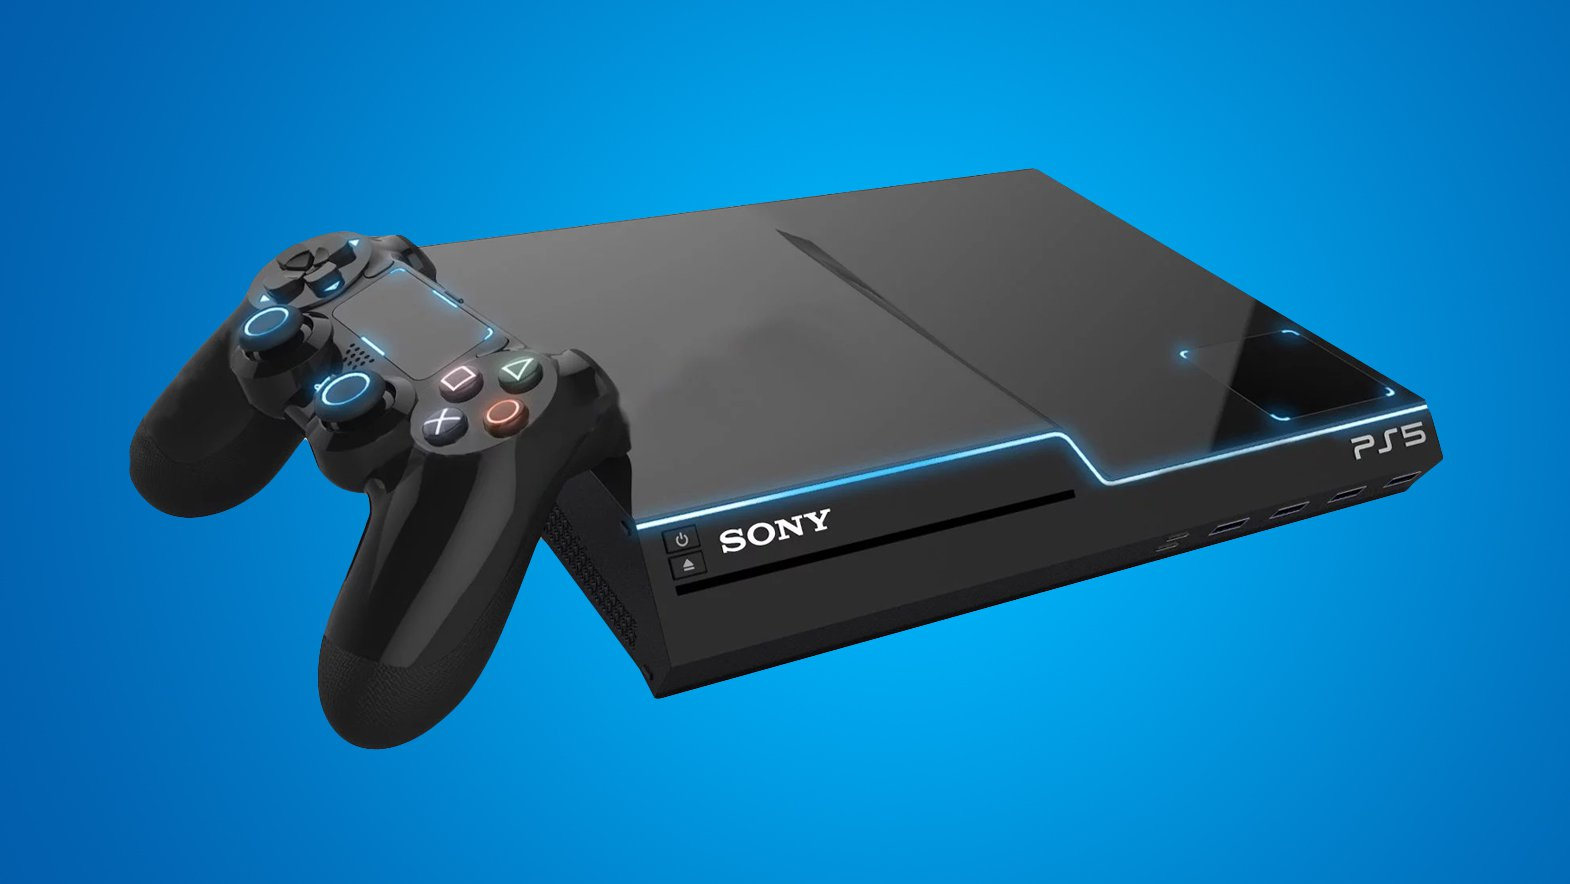 Sony PS5 Specs and Features Leaks New PlayStation Details Revealed as Pre-Registration Starts